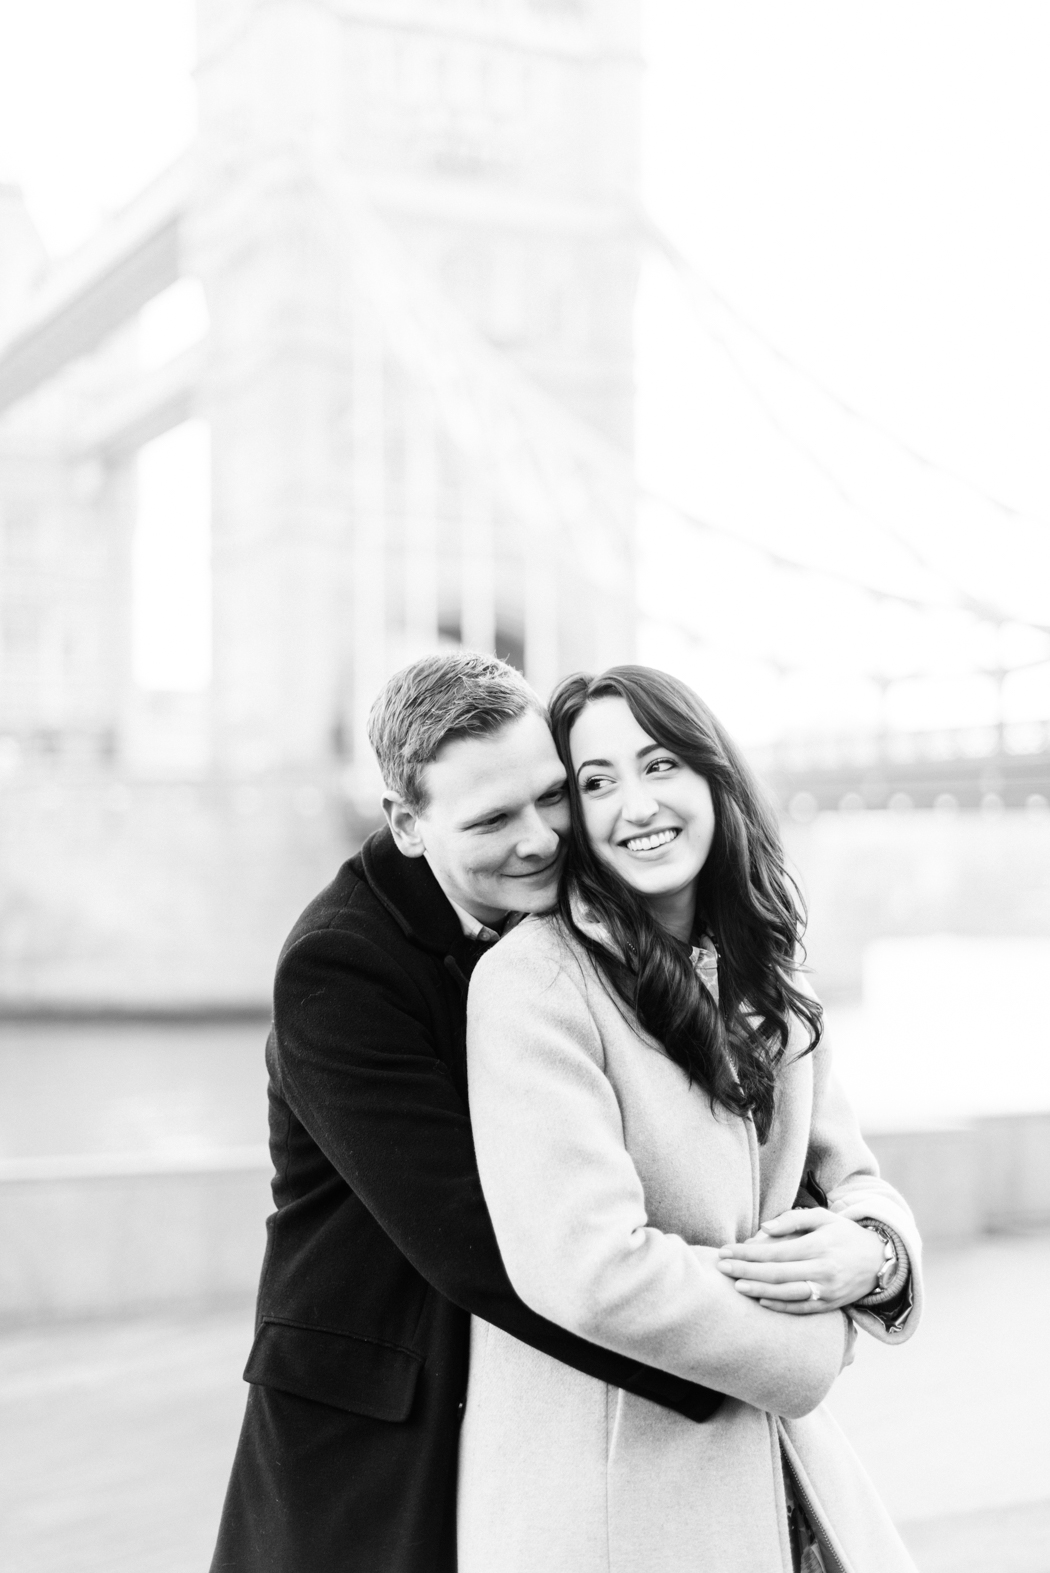 Julie Michaelsen Photography - London Engagement Photos - Rebecca K Events - London Wedding Planner